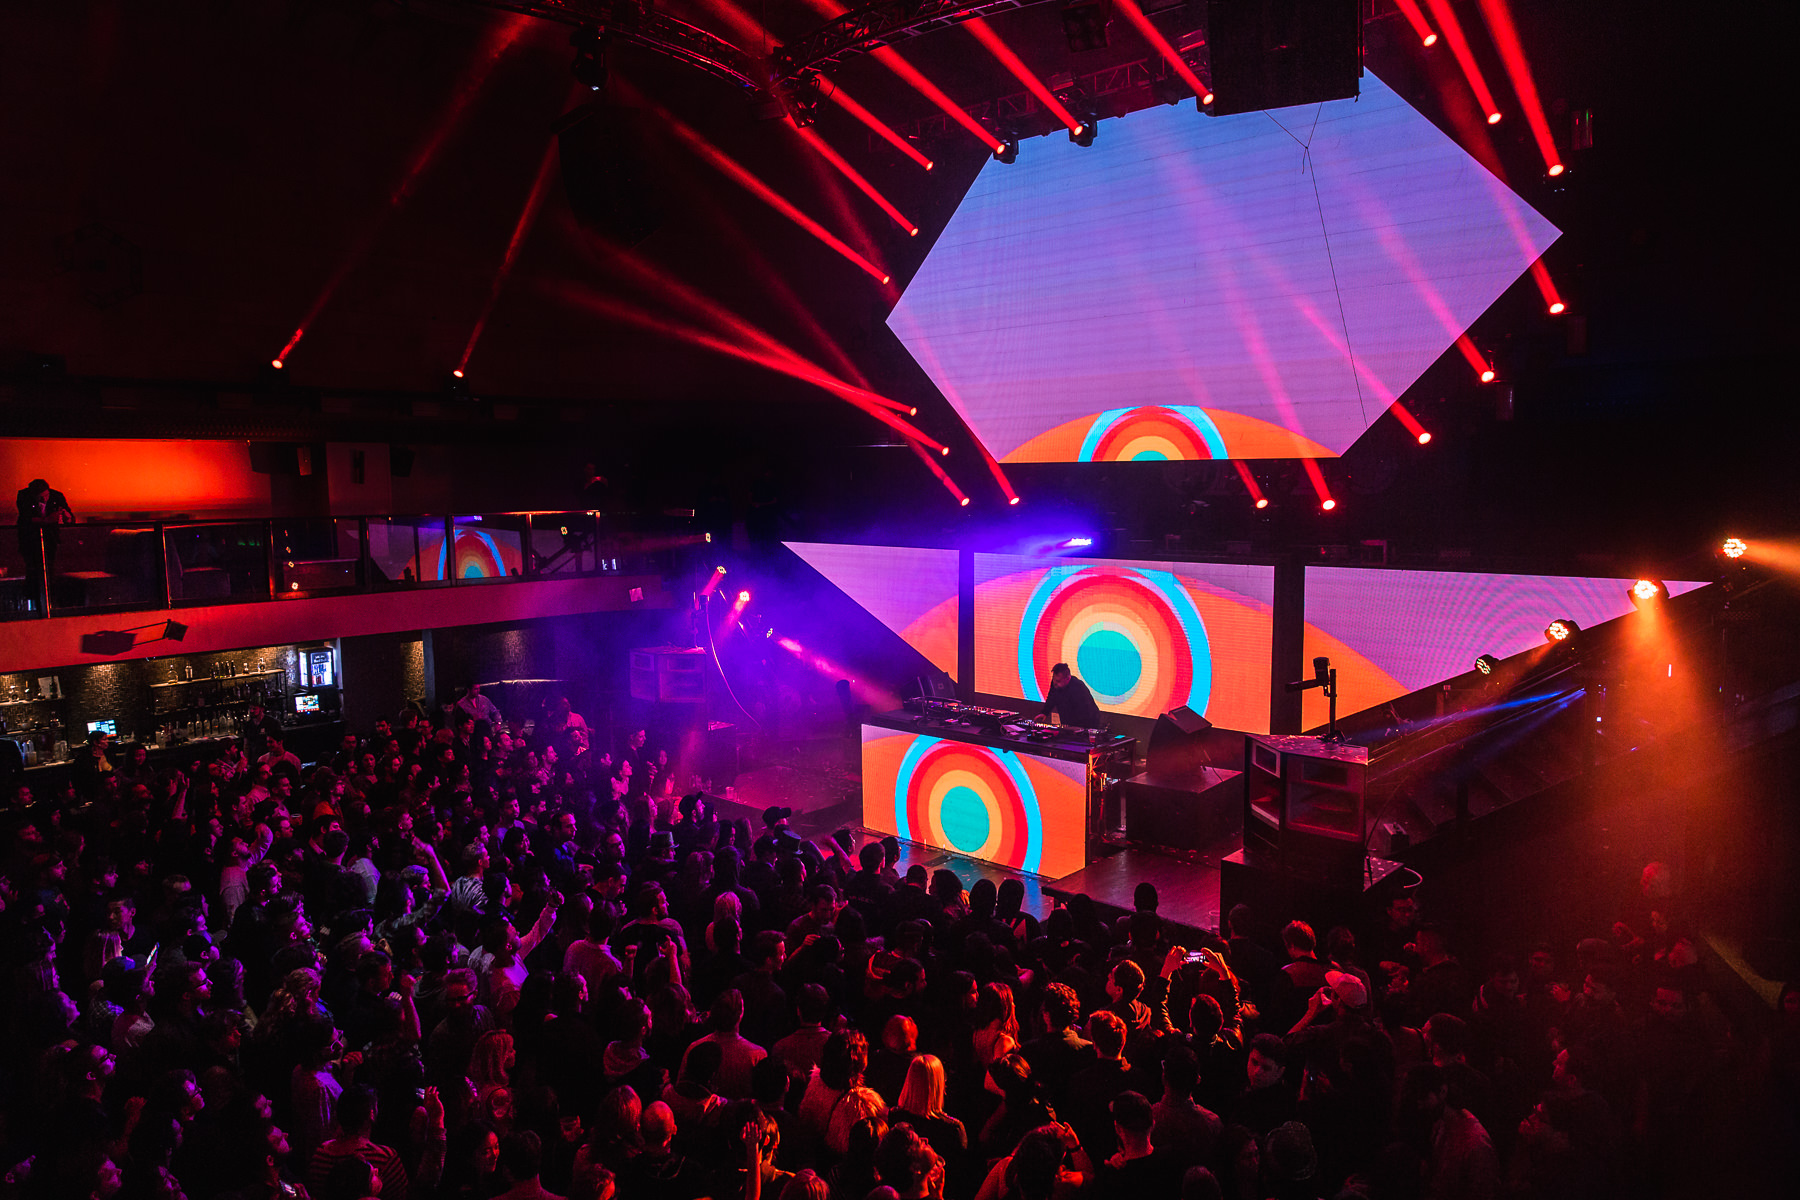 180318-kirby-gladstein-photograpy-com-truise-concert-exchange-LA-los-angeles-0761.jpg